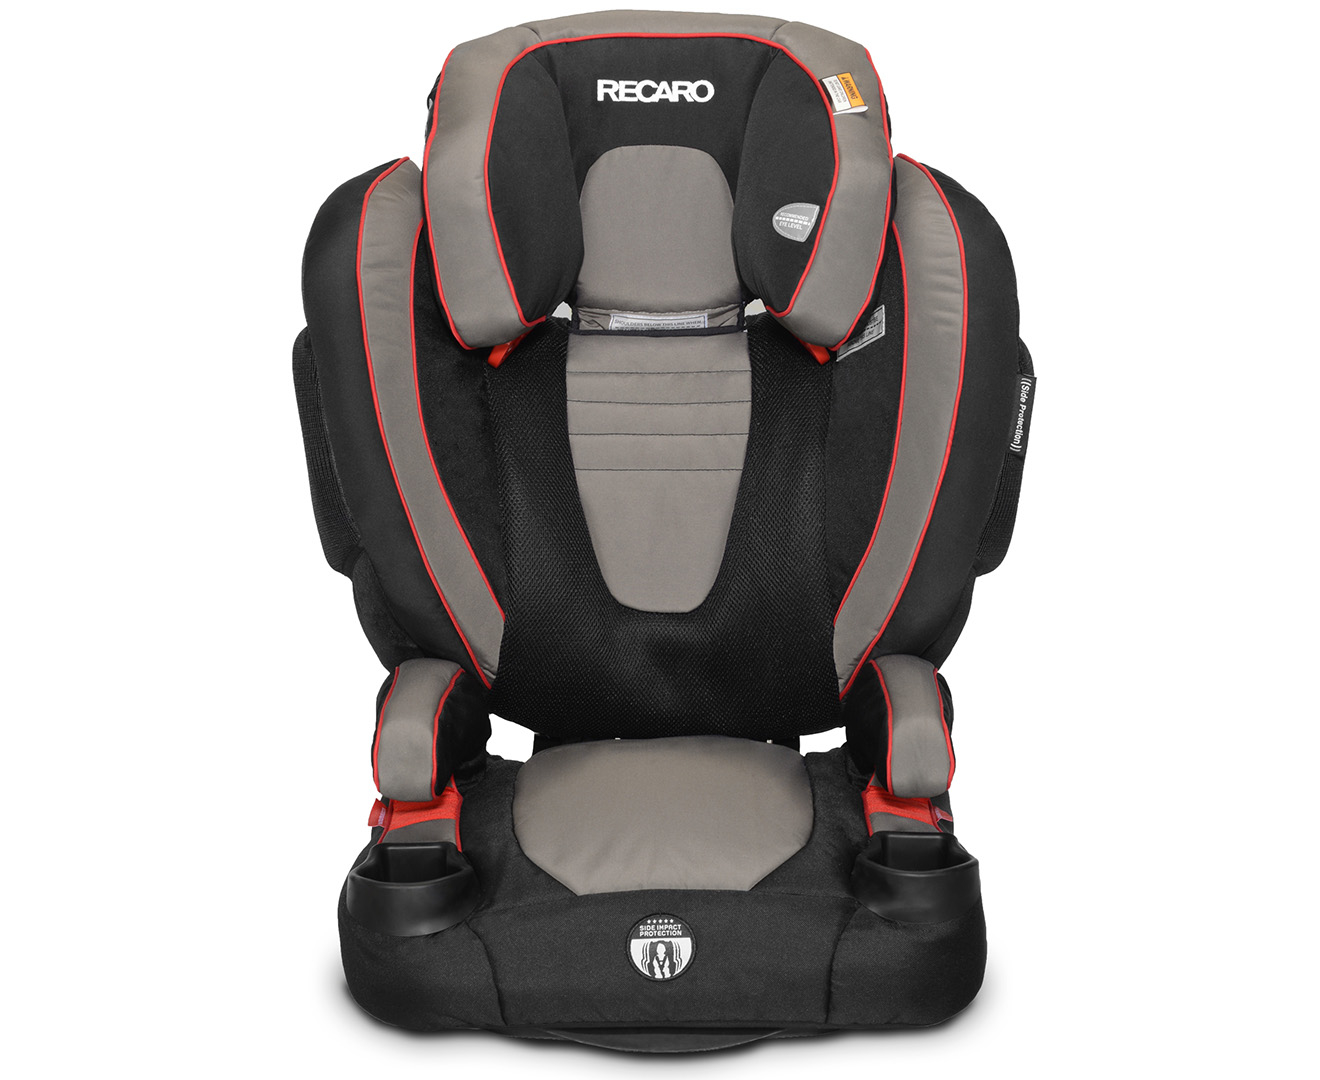 recaro performance booster car seat vibe ebay. Black Bedroom Furniture Sets. Home Design Ideas